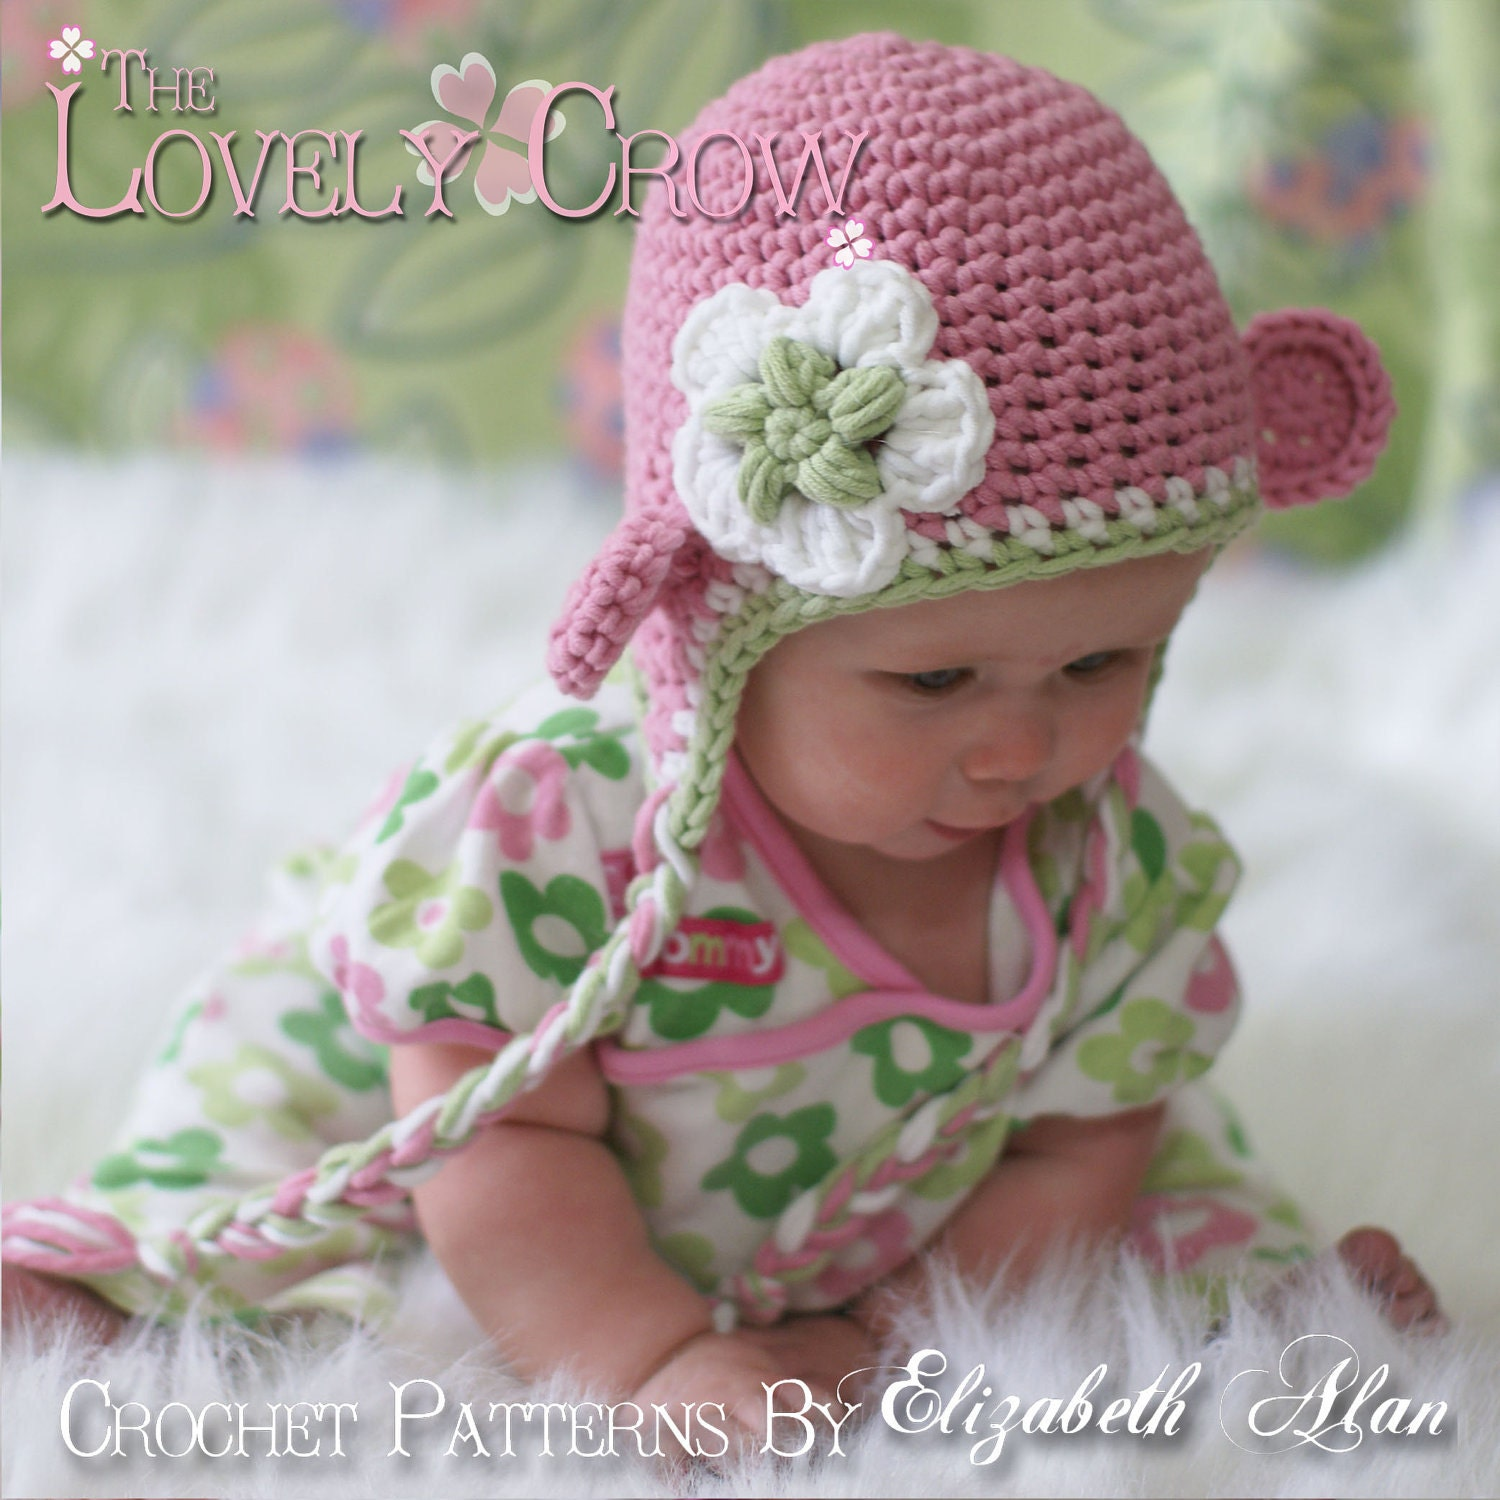 Free Crochet Patterns For Baby Sport Yarn : CROCHET PATTERNS FOR BULKY YARN - Crochet Club